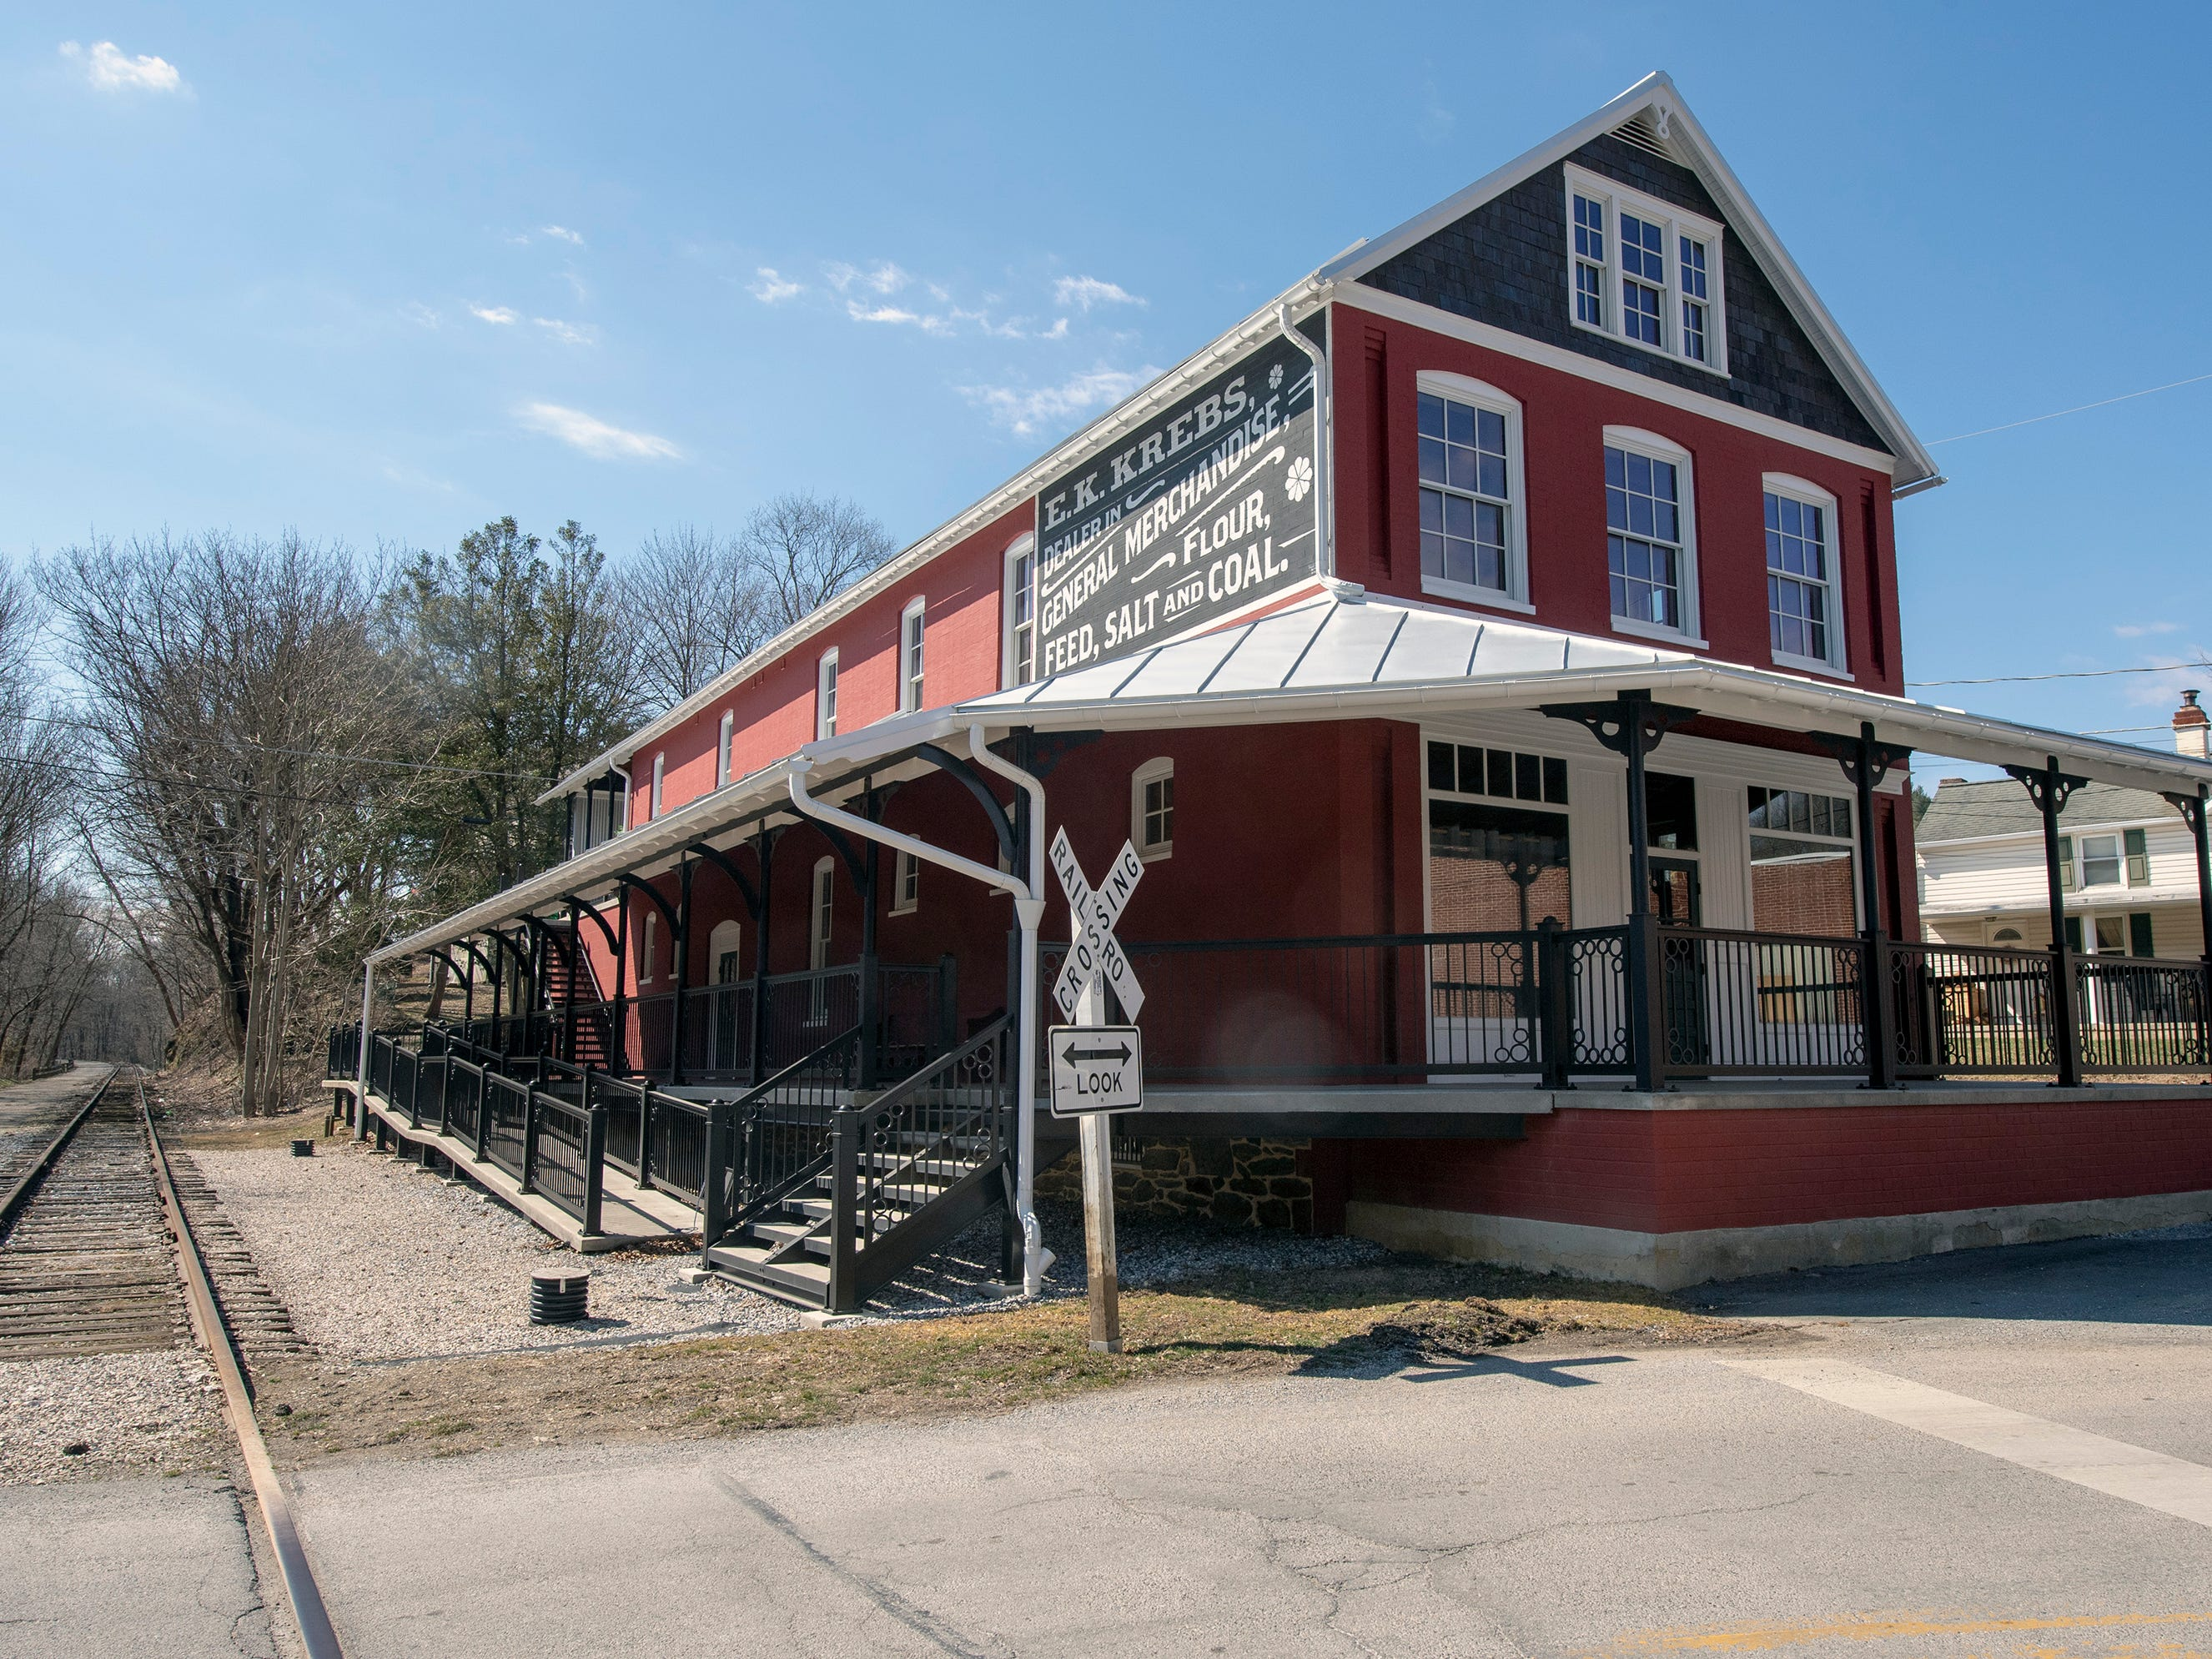 The renovated Seitzland store is shown with new porches and ironwork in Seitzland Village outside of Glen Rock. Old slates from the roof were used to reduce maintenance on the facade near the peak of the roof.